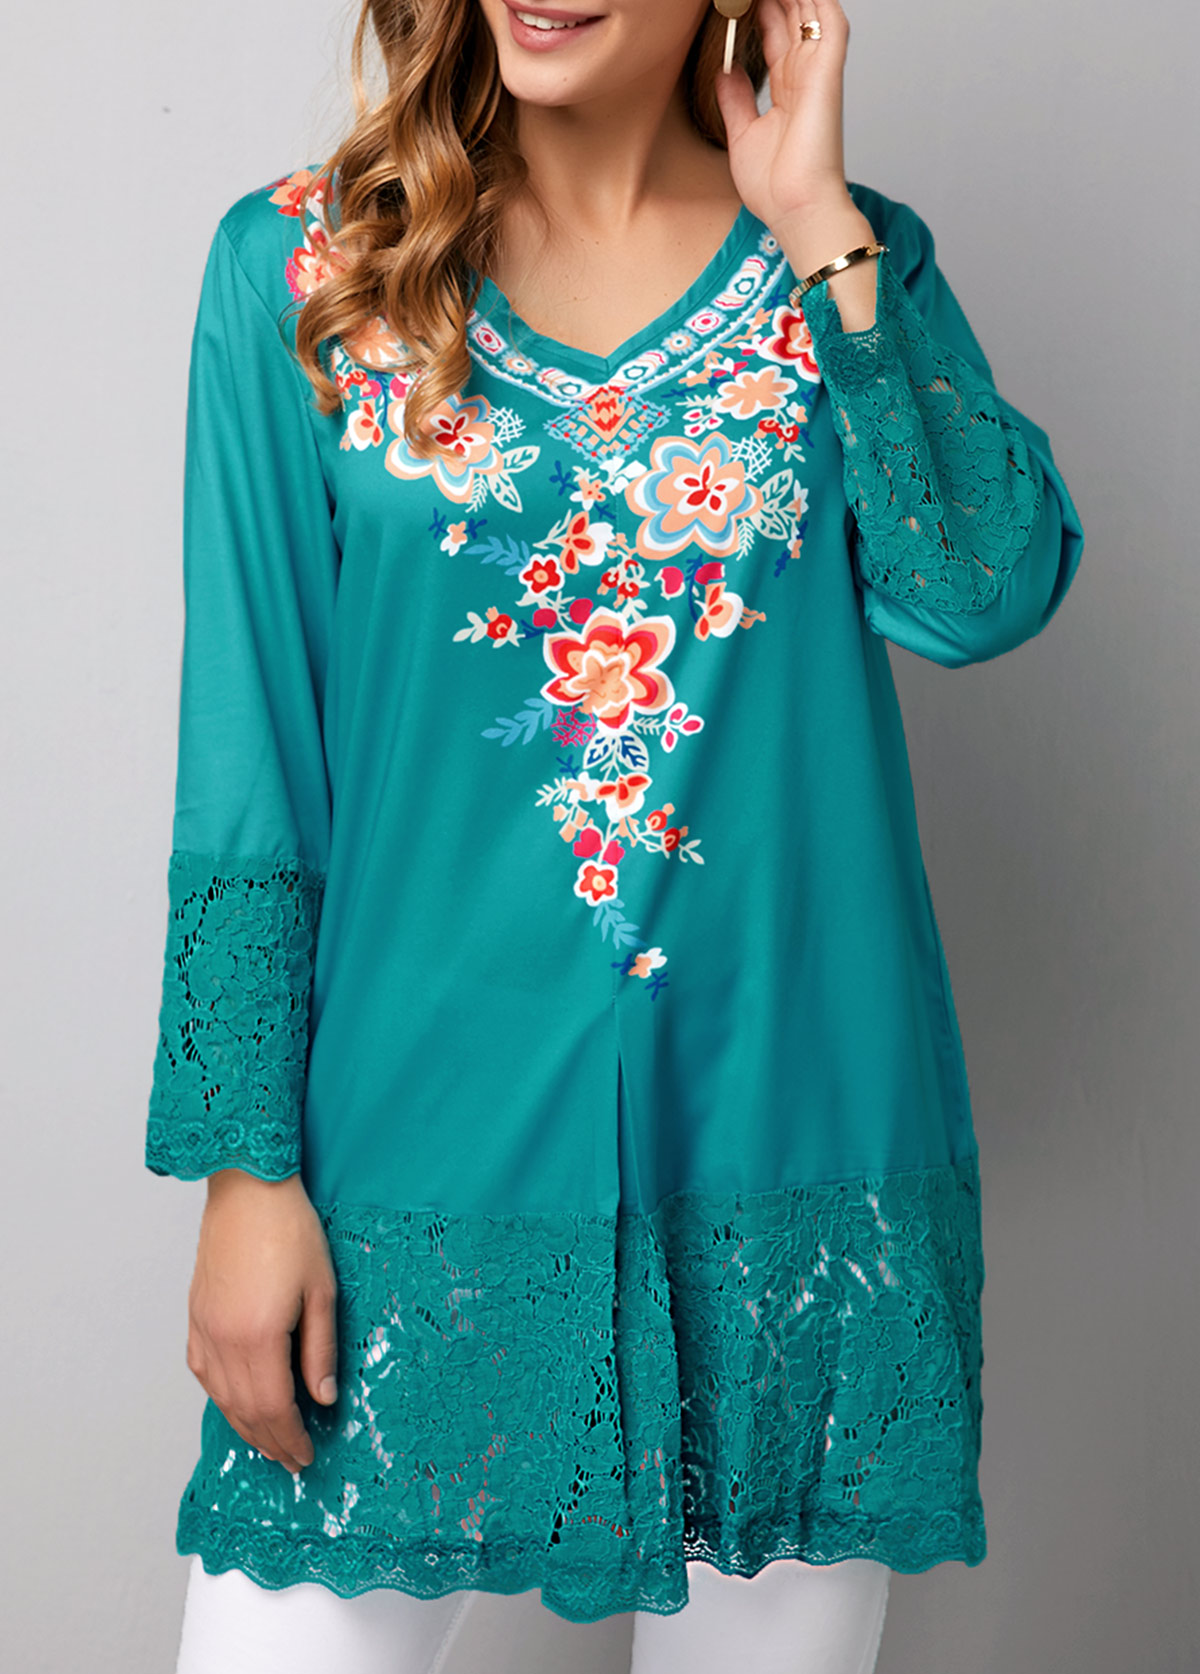 Lace Panel Retro Flower Print Peacock Blue Blouse